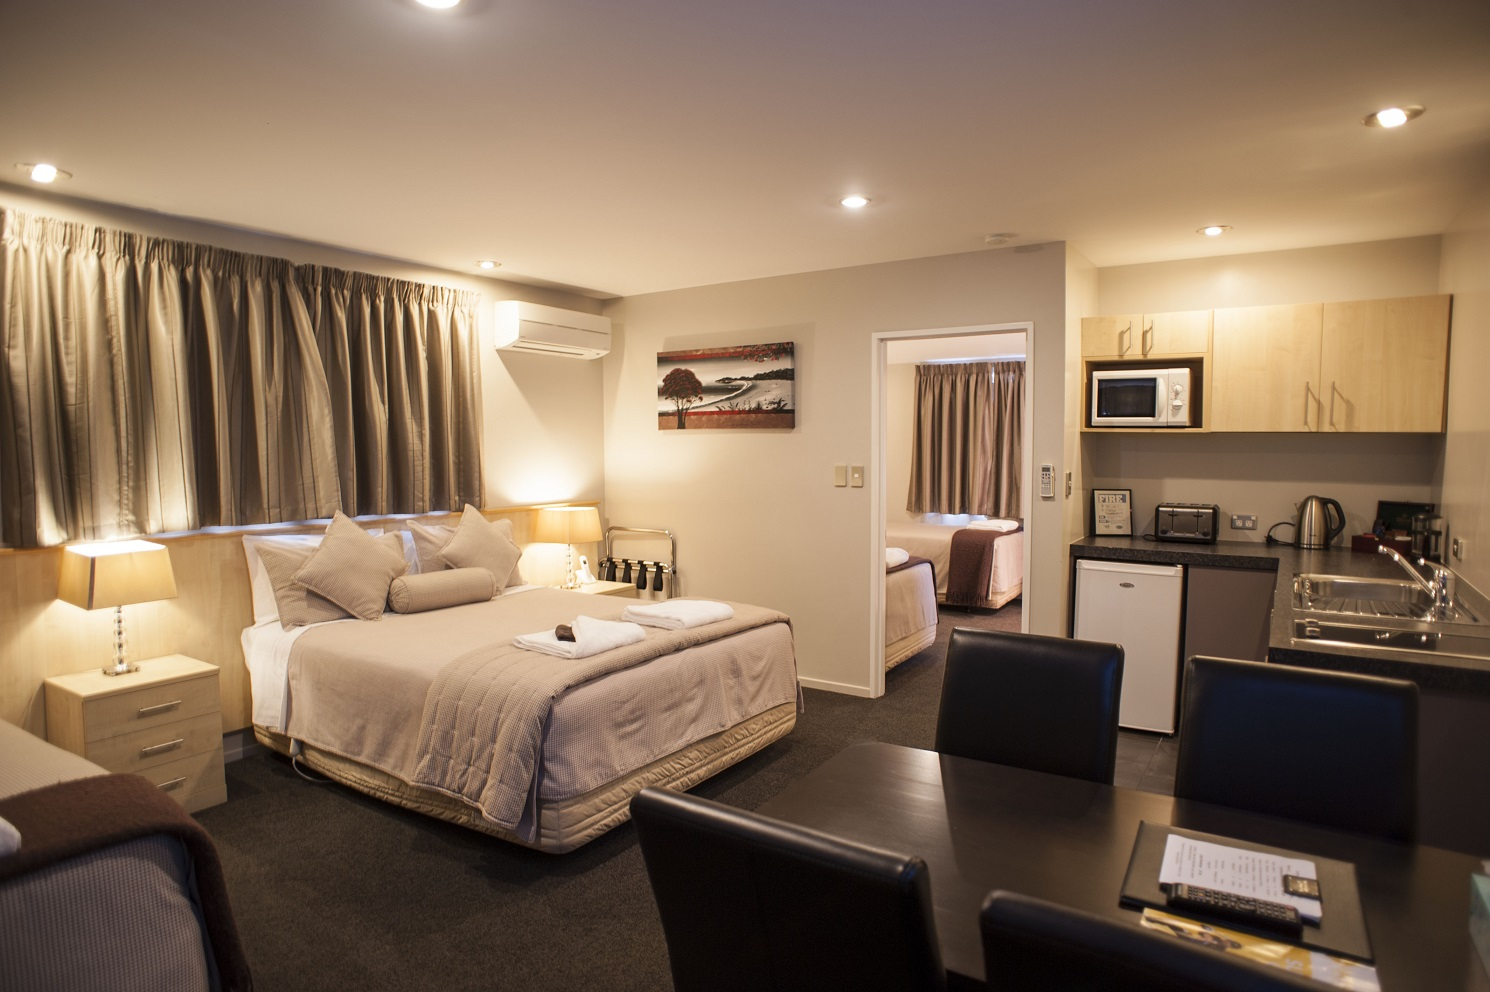 A Large One Bedroom Apartment jpg. Christchurch Luxury Apartment   Qualmark 5 Star 1 Bedroom Apartment